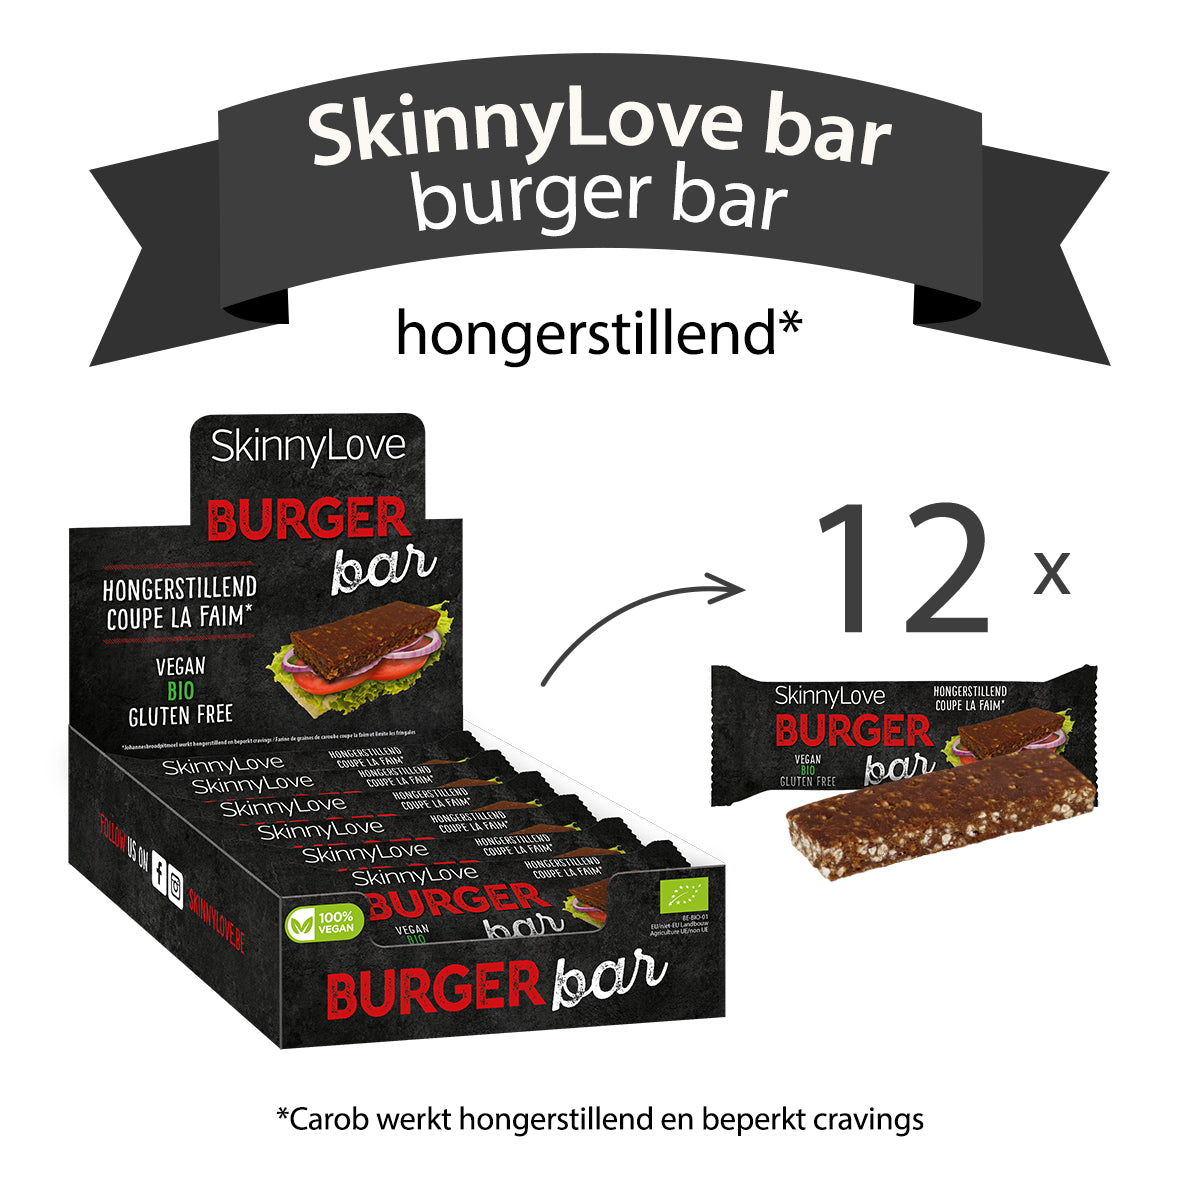 SkinnyLove Burger bar